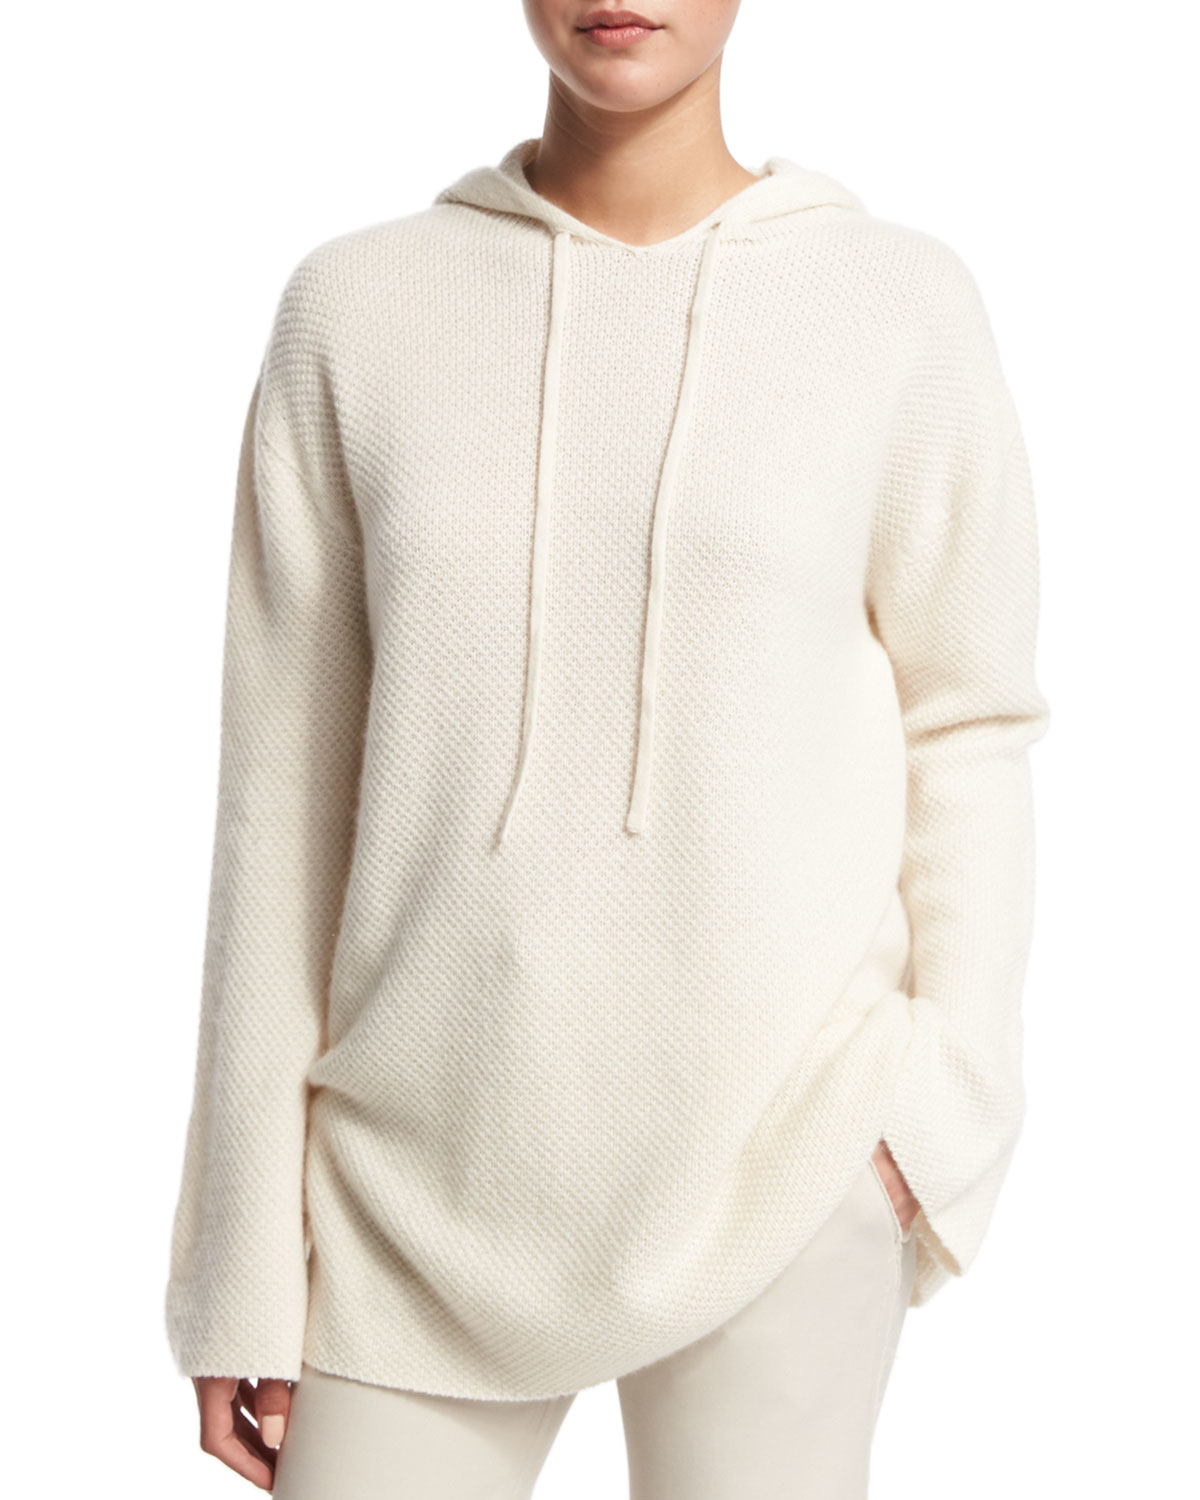 Helmut lang Cashmere Hoodie Sweater in Natural | Lyst